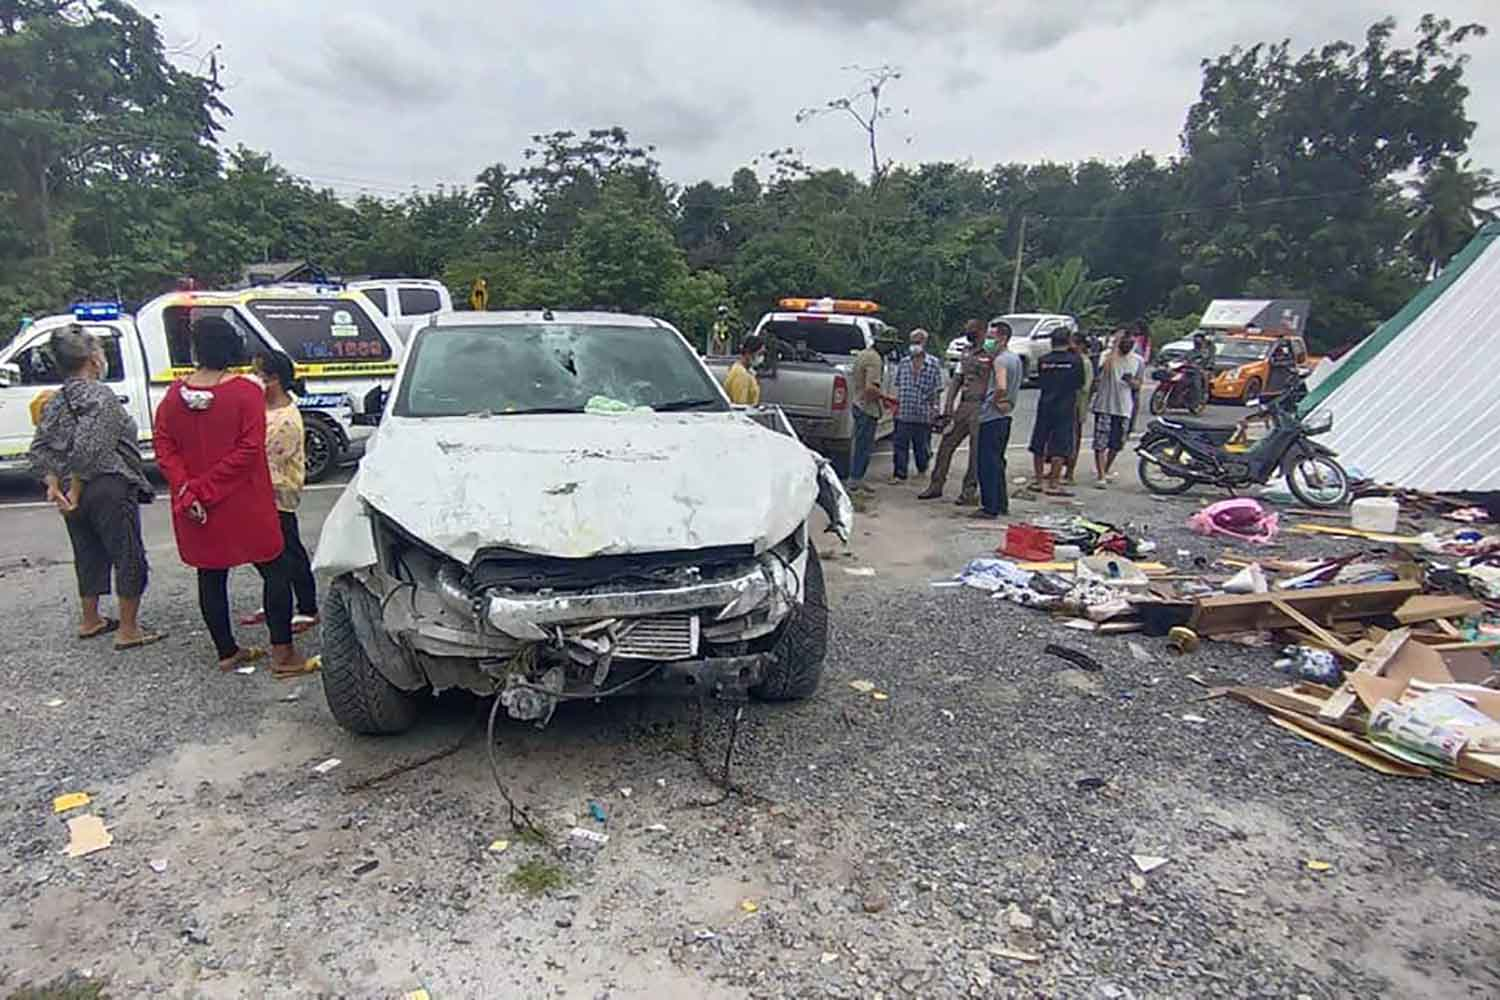 A pick-up is badly damaged after ramming into a roadside shelter and a house in Nakhon Si Thammarat's Cha-uat district on Tuesday. An elderly woman was killed. Three others, including the police driver, were injured. (Photo: Nujaree Rakrun)